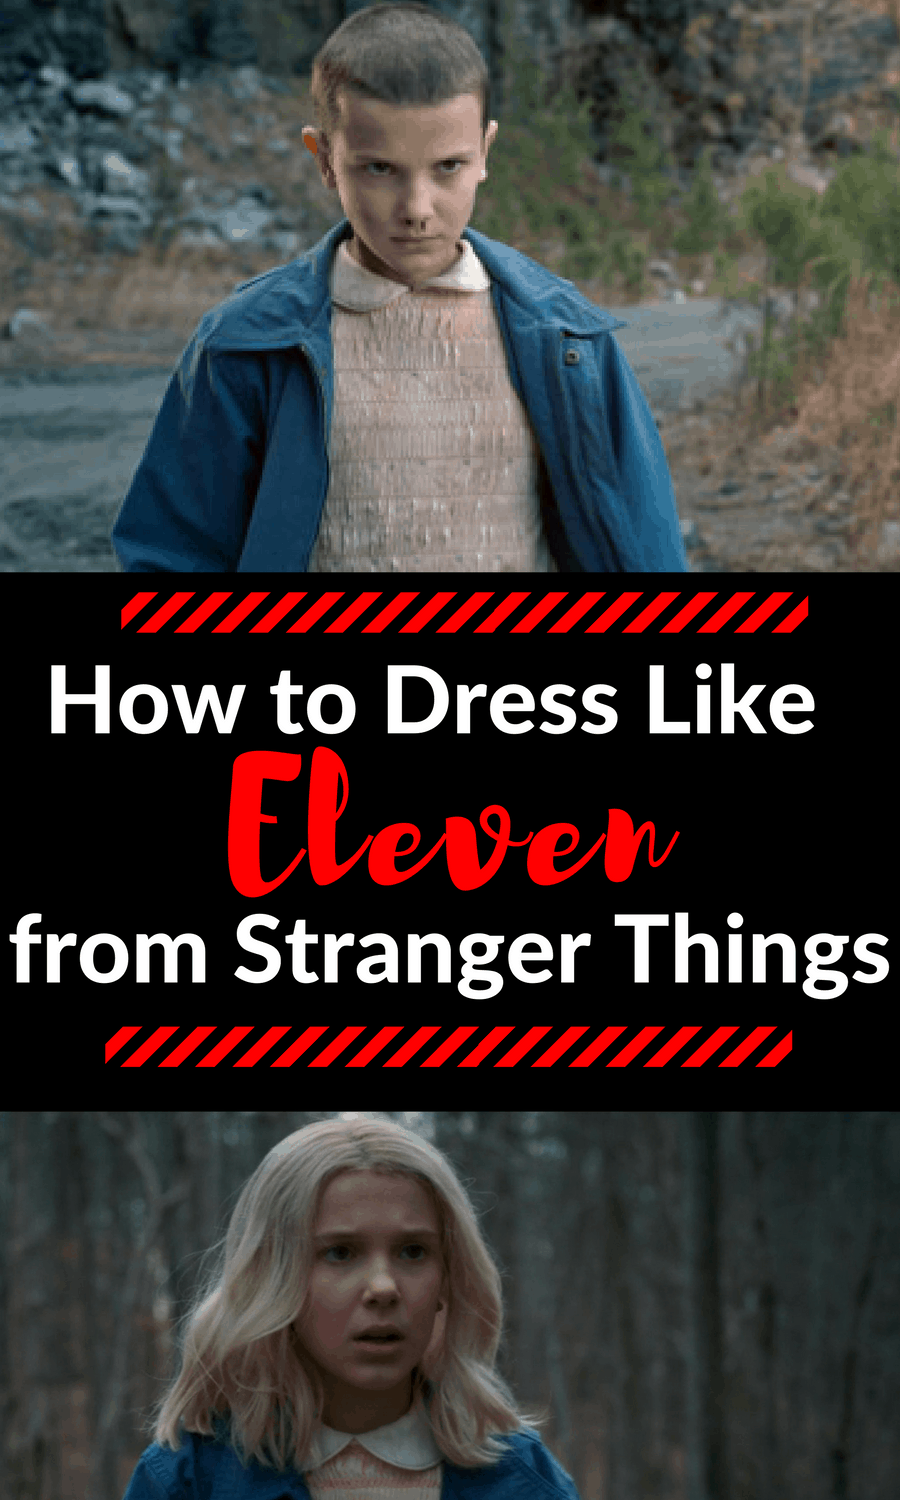 Here's how you can dress like Eleven from Stranger Things this Halloween. Keep reading for an inexpensive, easy how-to for an awesome Stranger Things inspired costume.